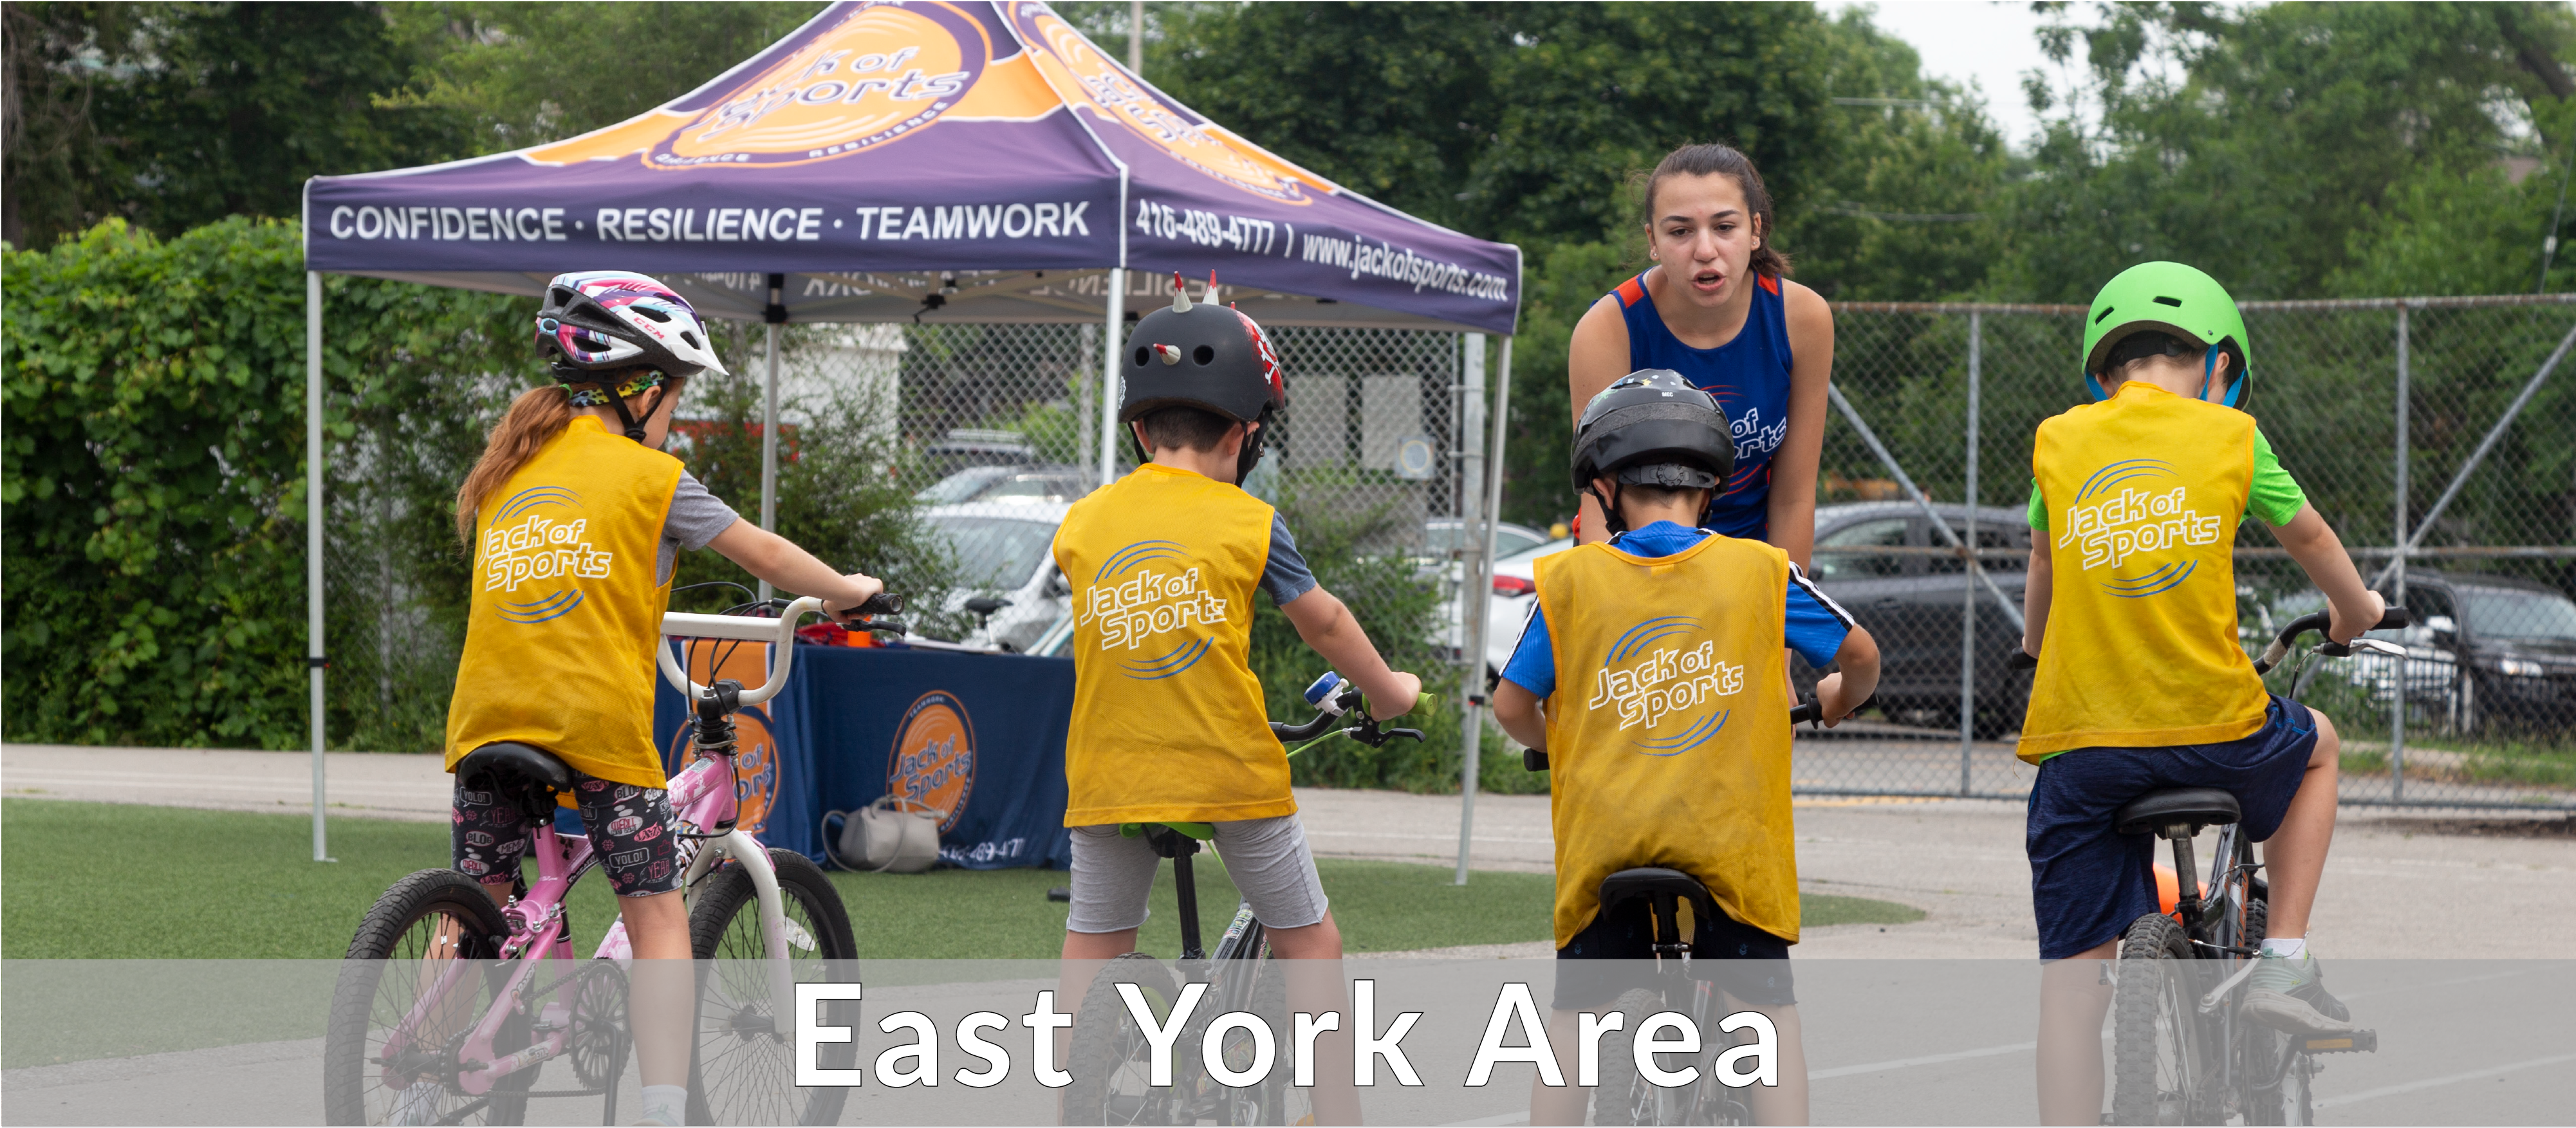 East York Area Summer Camps near me 2020